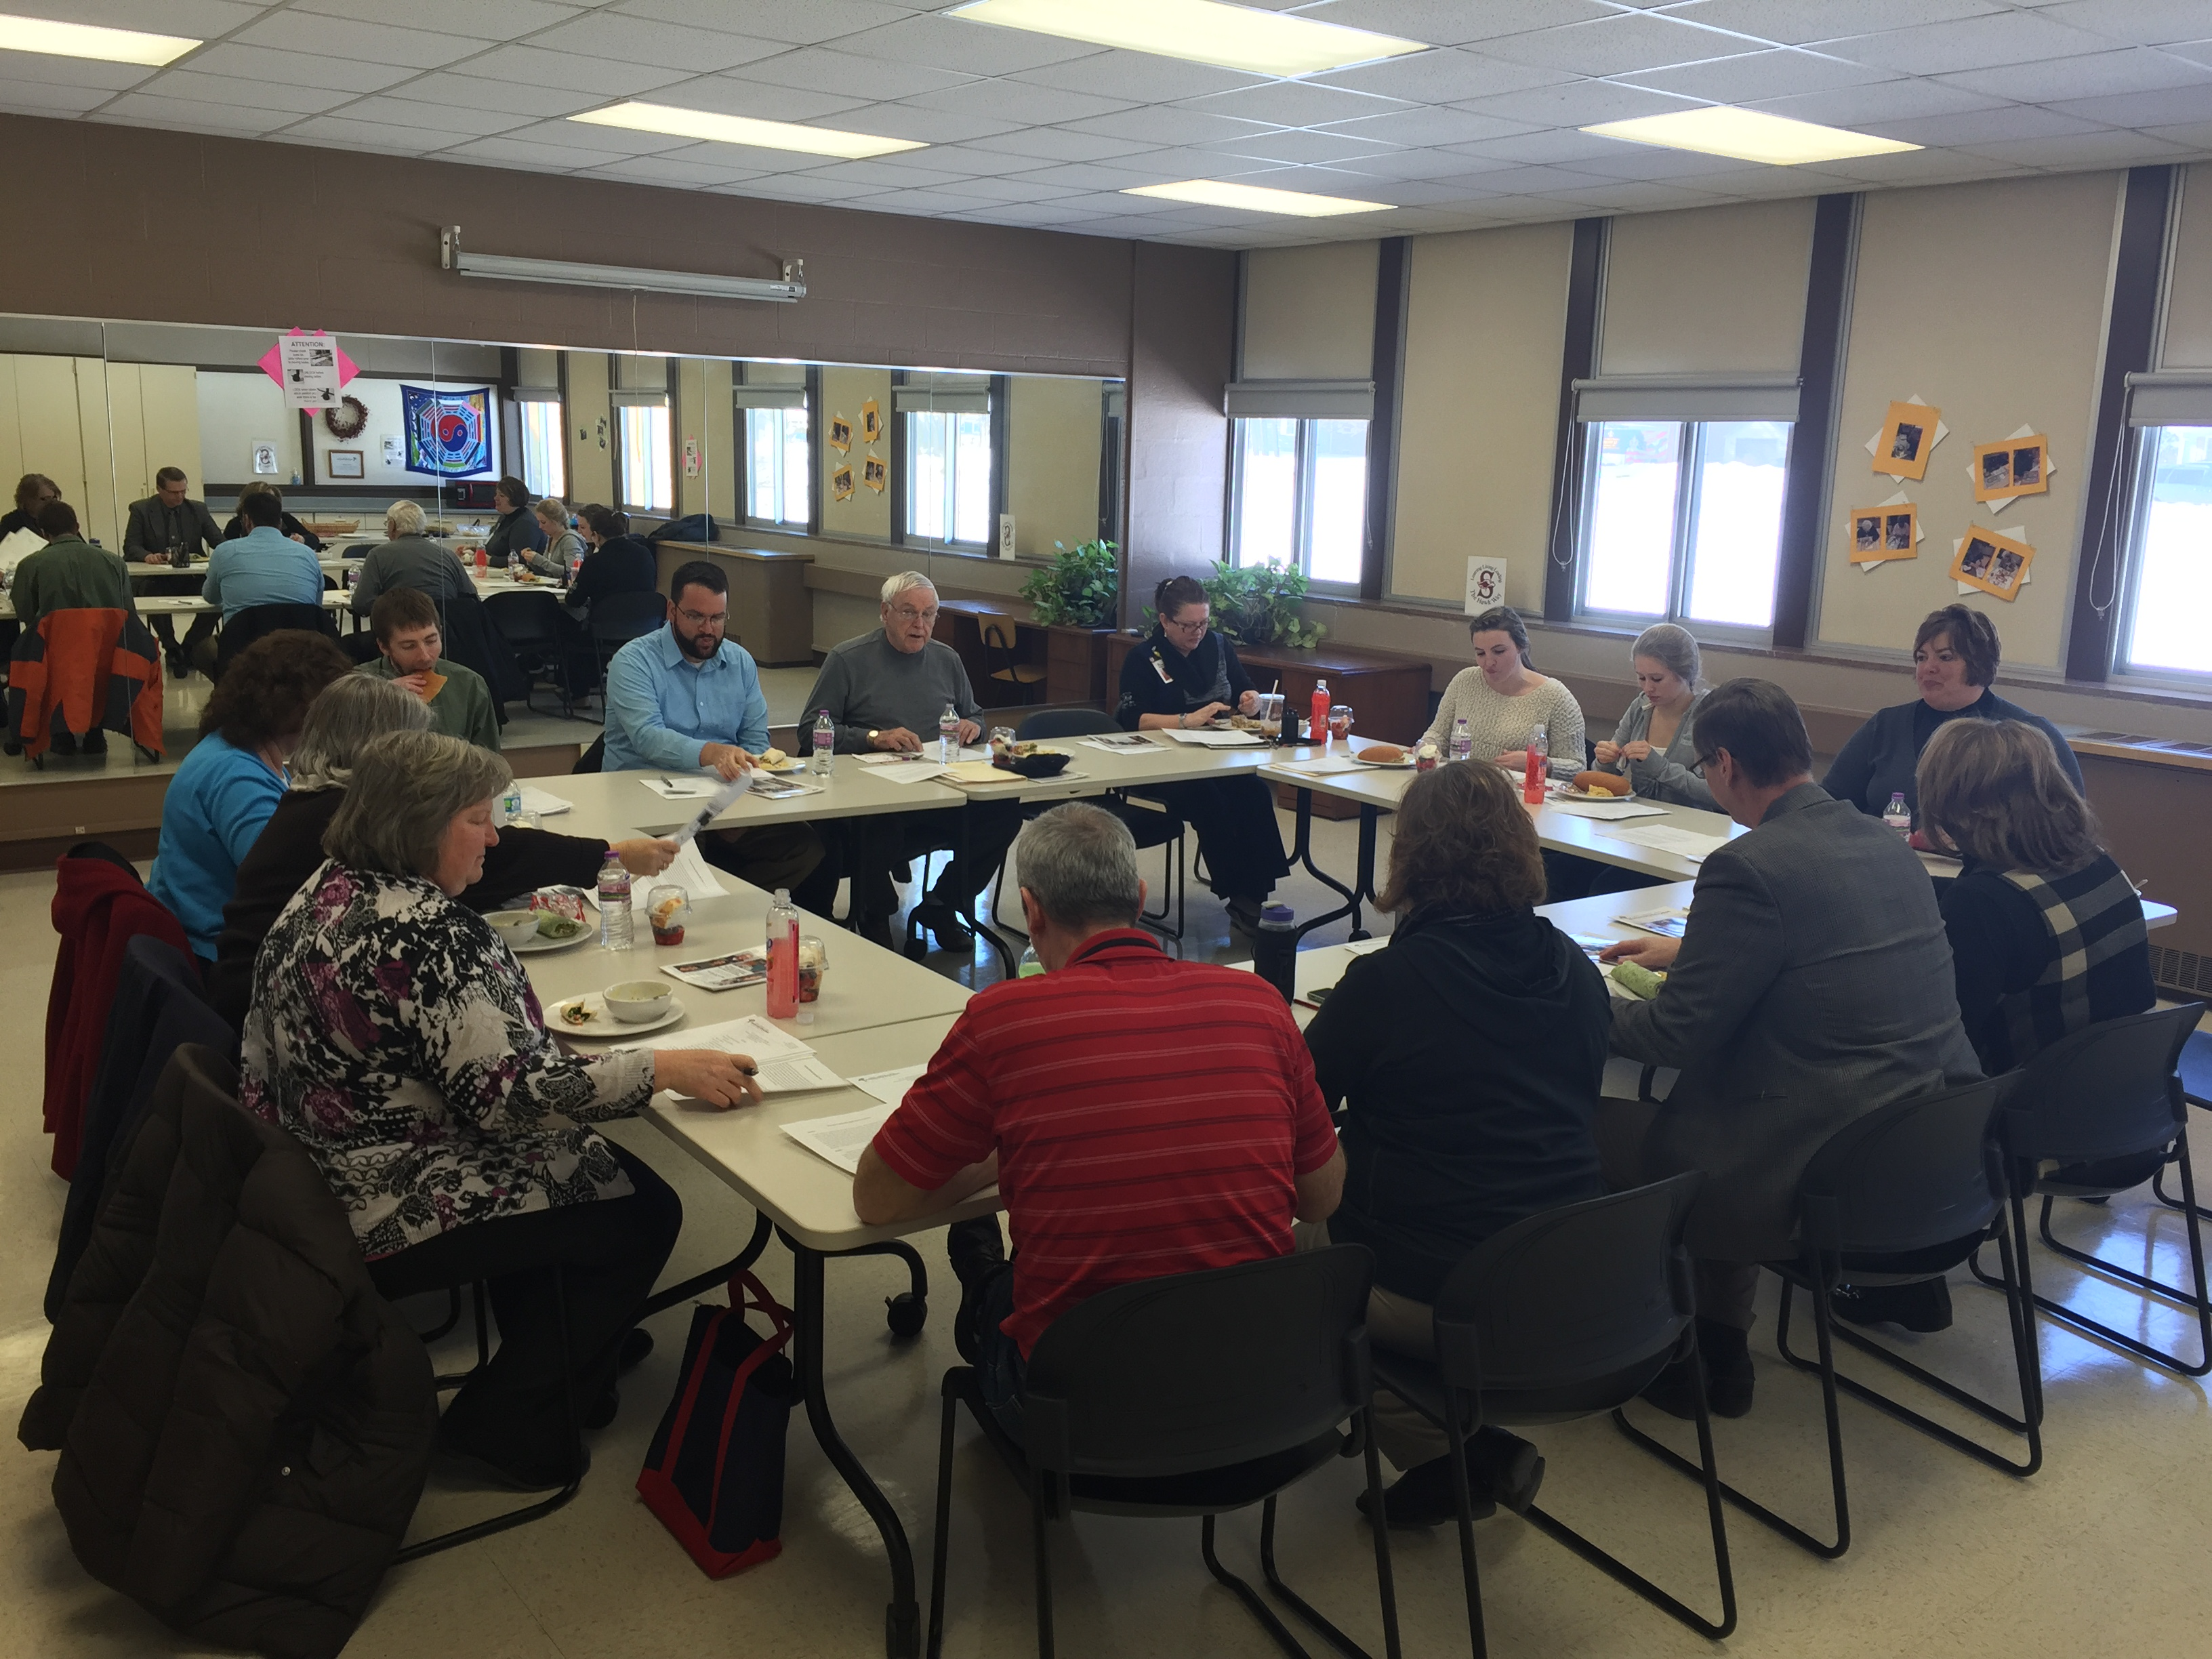 COMMUNITY EDUCATION ADVISORY COUNCIL